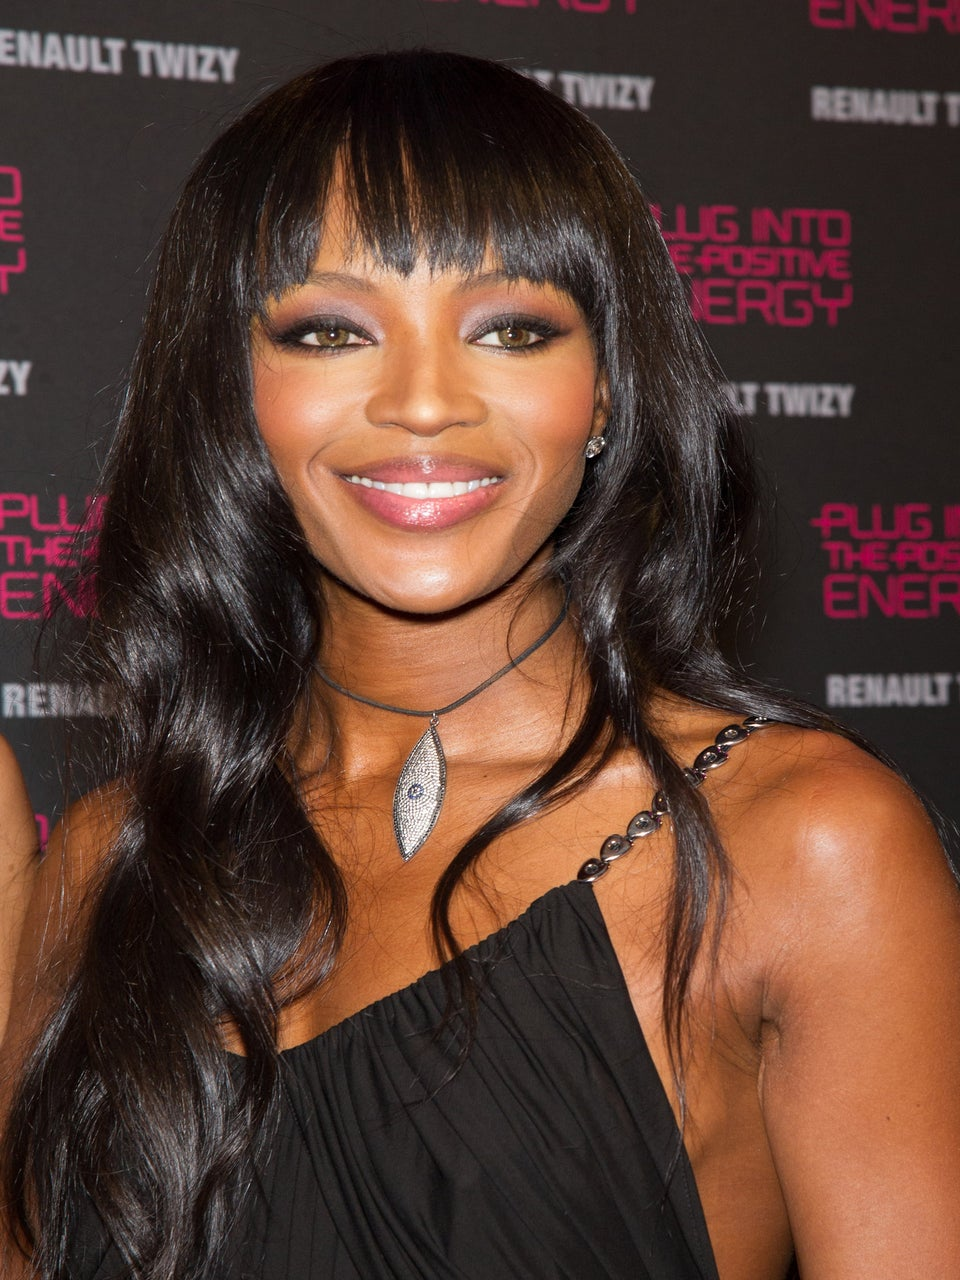 Naomi Campbell Joins New Modeling Reality Show